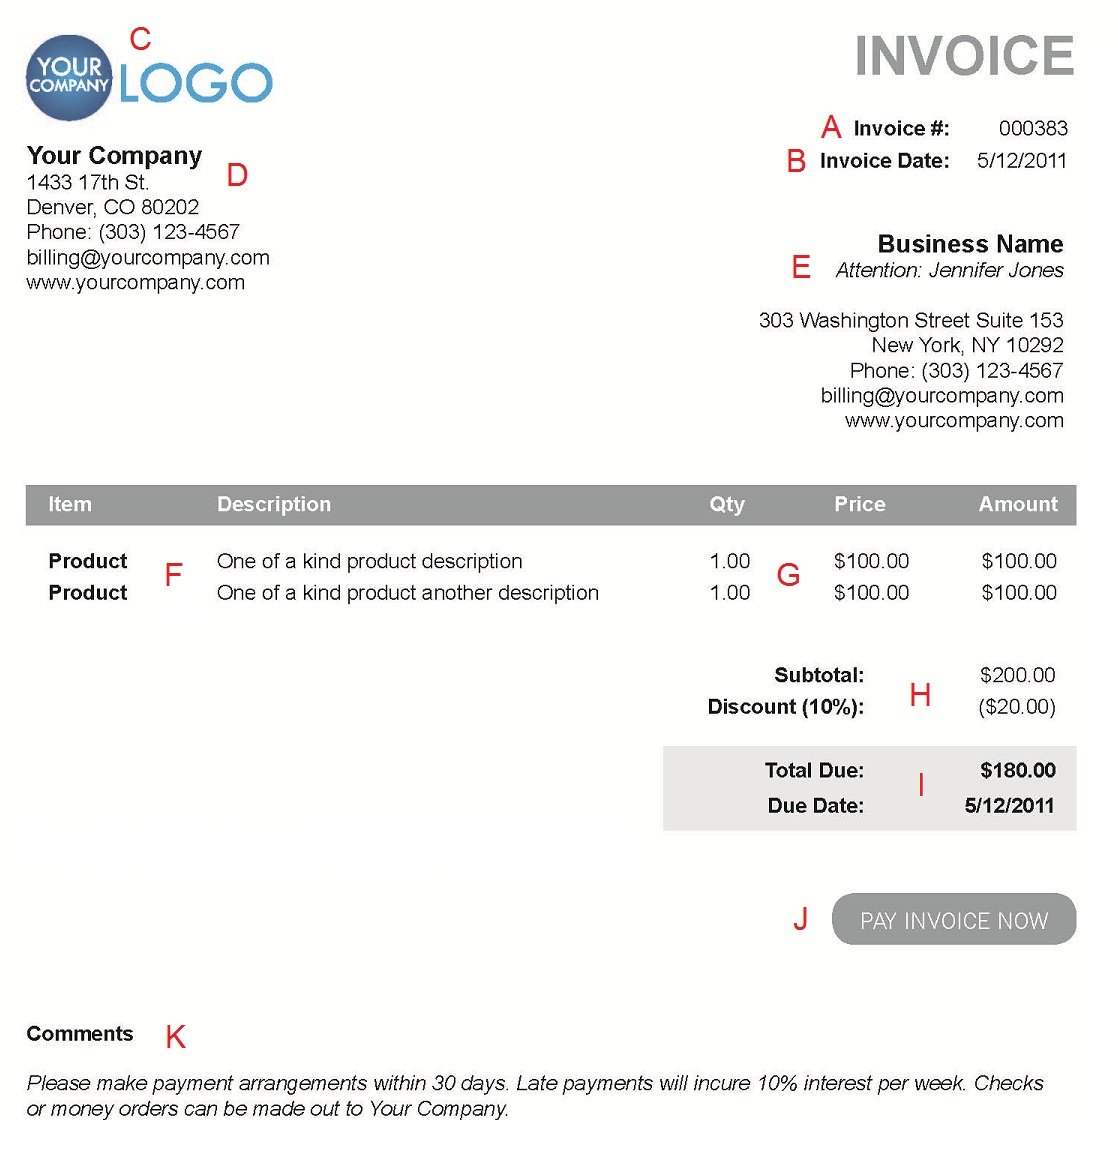 Musclebuildingtipsus  Picturesque The  Different Sections Of An Electronic Payment Invoice With Interesting A  With Astonishing Difference Between Invoice And Bill Also Paypal Invoice Fee In Addition Printable Invoice And Square Invoice As Well As Invoice Template Free Additionally Invoices To Go From Paysimplecom With Musclebuildingtipsus  Interesting The  Different Sections Of An Electronic Payment Invoice With Astonishing A  And Picturesque Difference Between Invoice And Bill Also Paypal Invoice Fee In Addition Printable Invoice From Paysimplecom